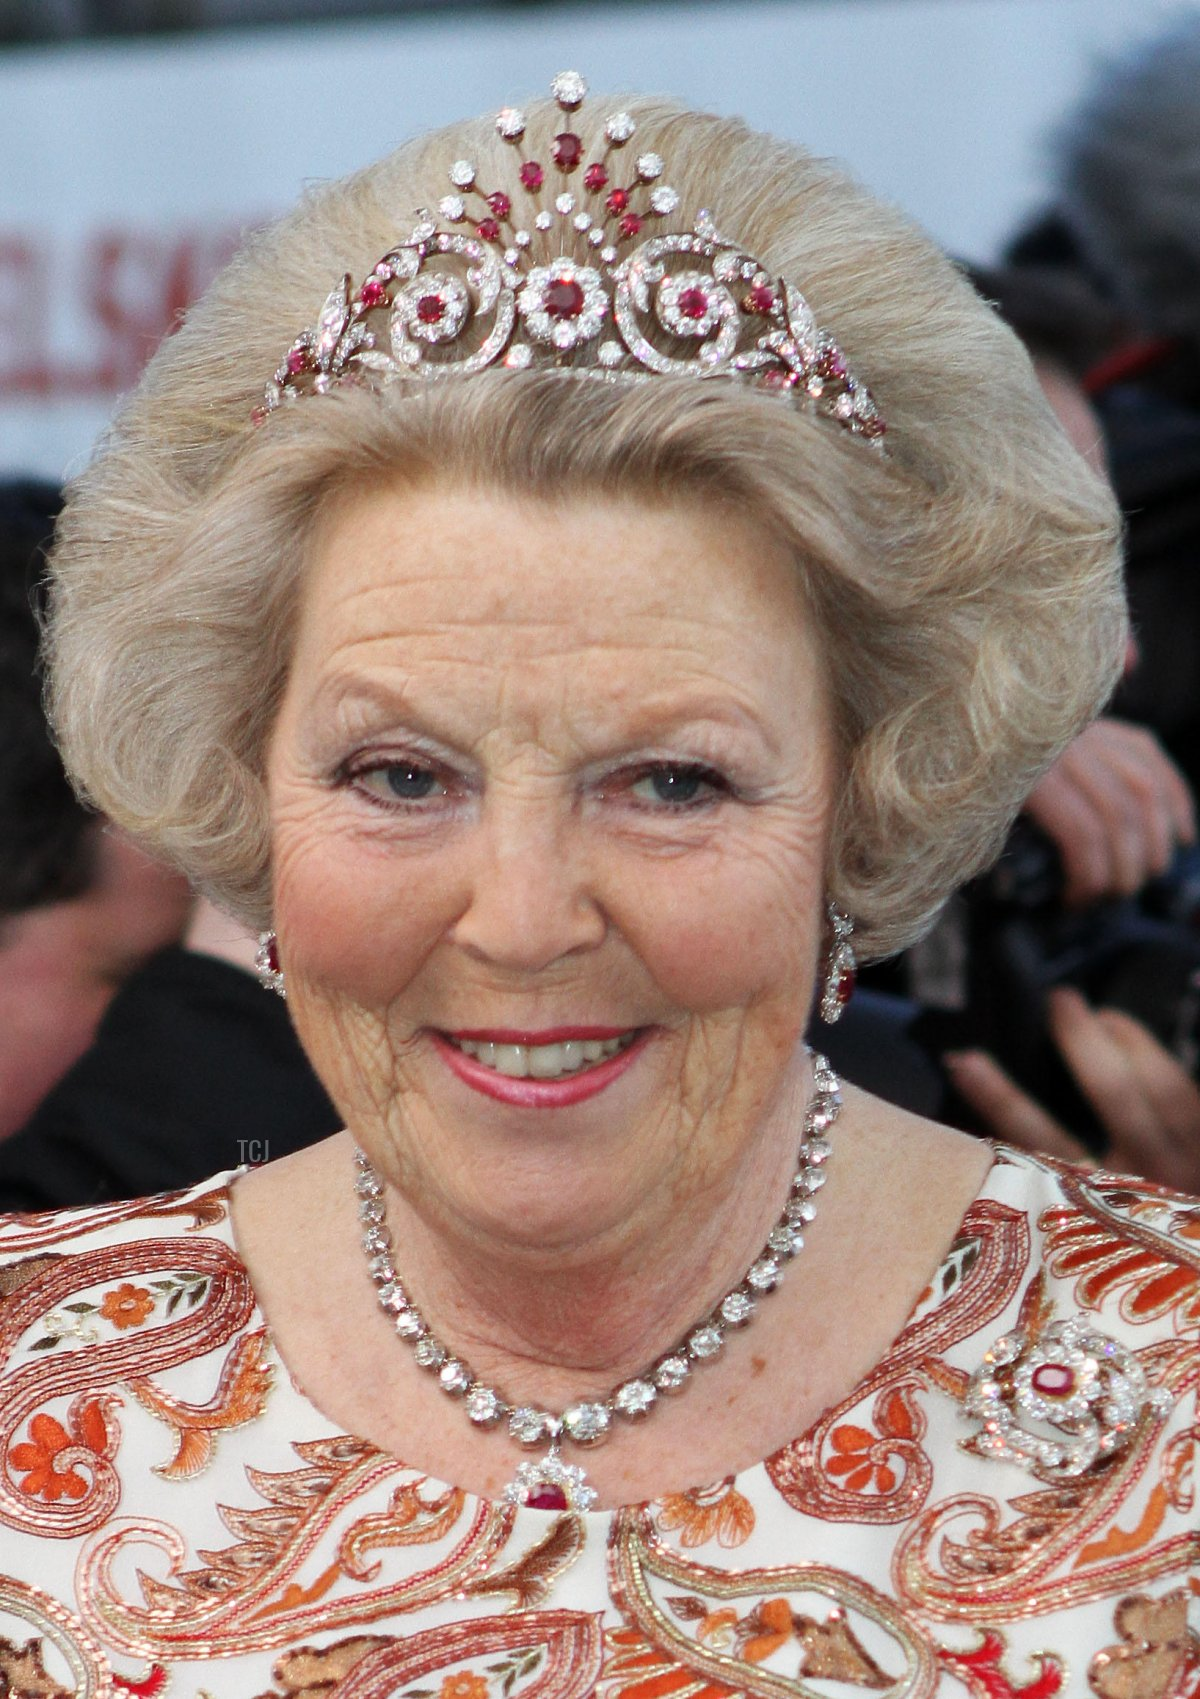 Dutch Queen Beatrix arrives to the gala dinner on the occasion of the celebration of the 70th birthday of Danish Queen Margrethe, Fredensborg Palace, Denmark, 16 April 2010